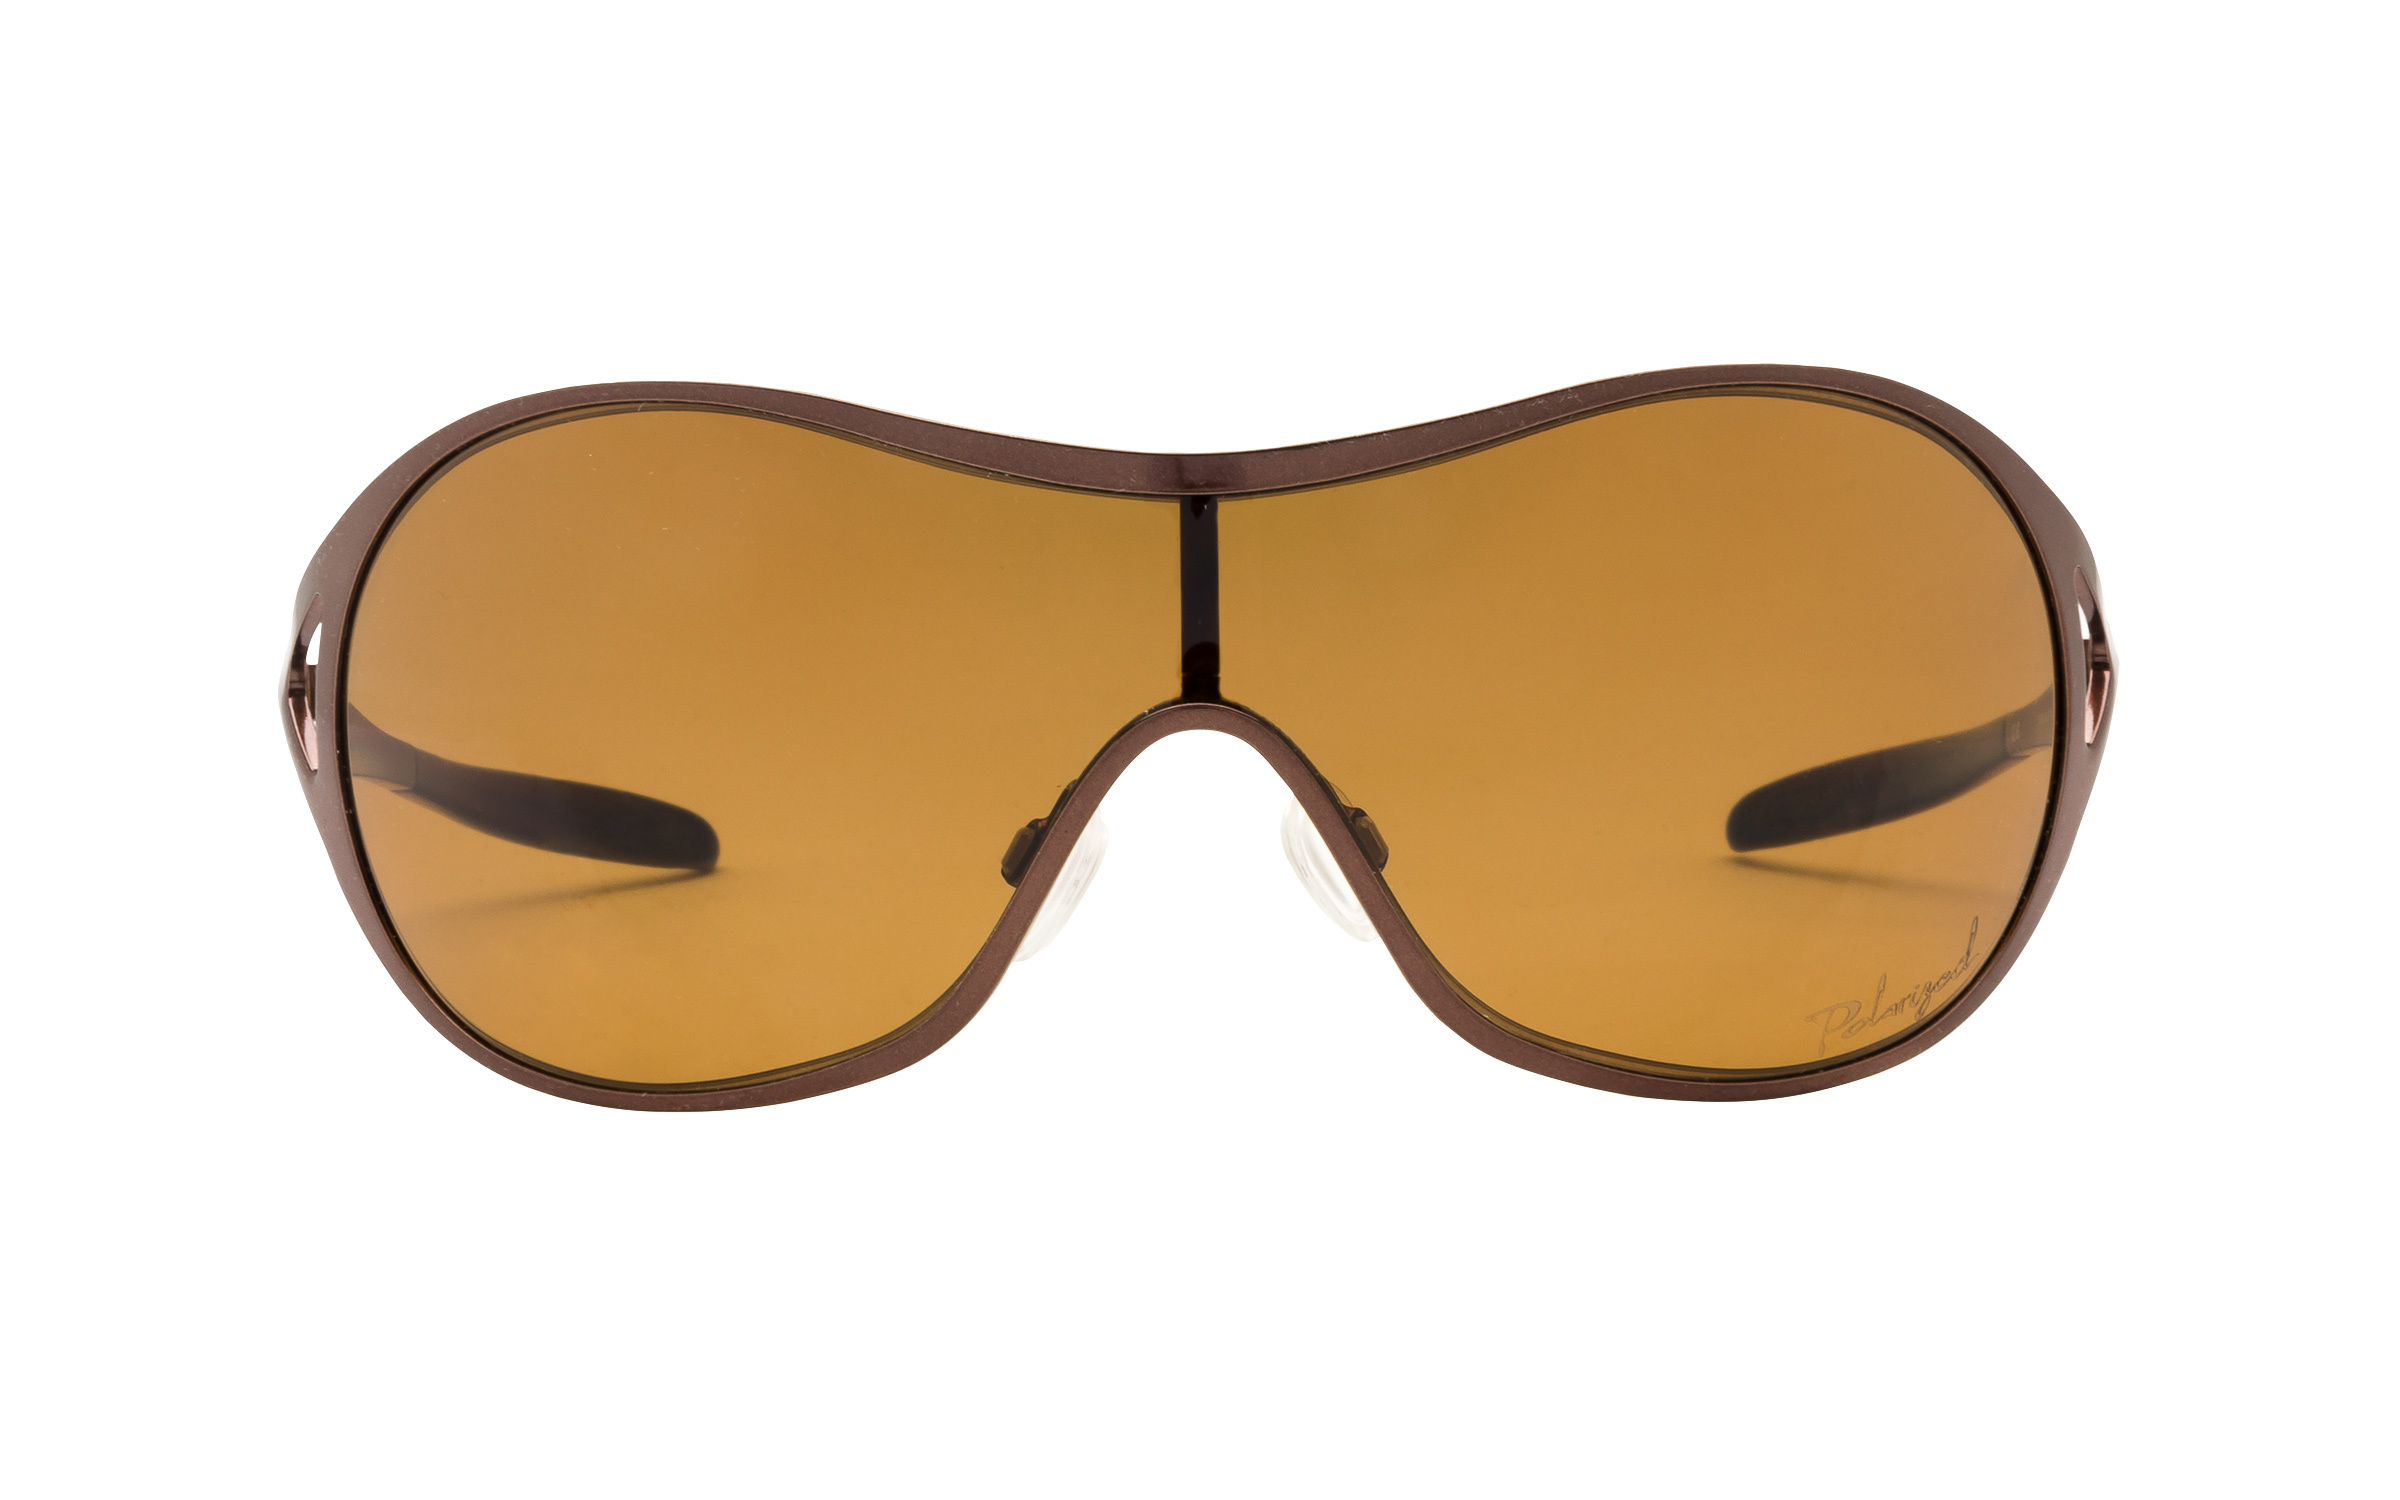 Oakley_Sunglasses_Brown_PolarizedMetal_Online_Coastal